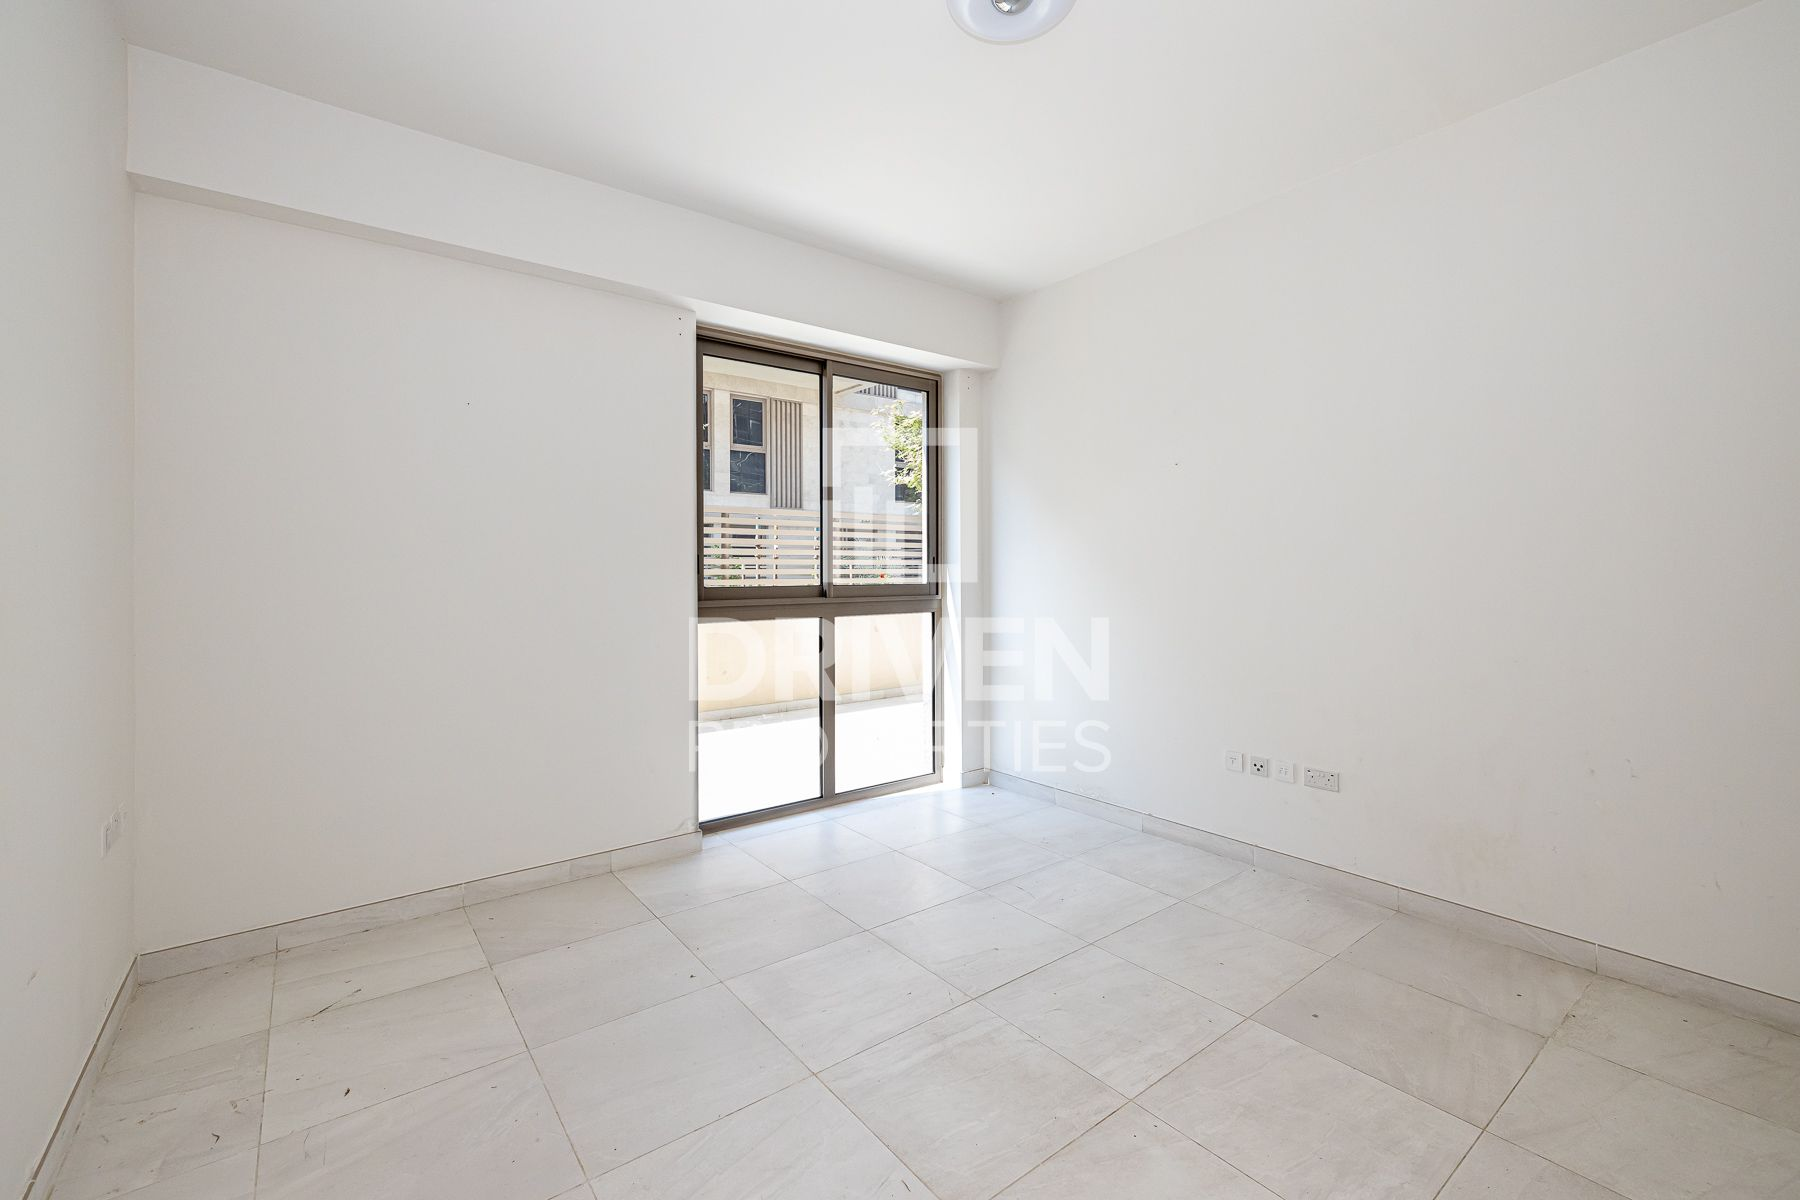 Apartment for Rent in Residence 1 - Meydan